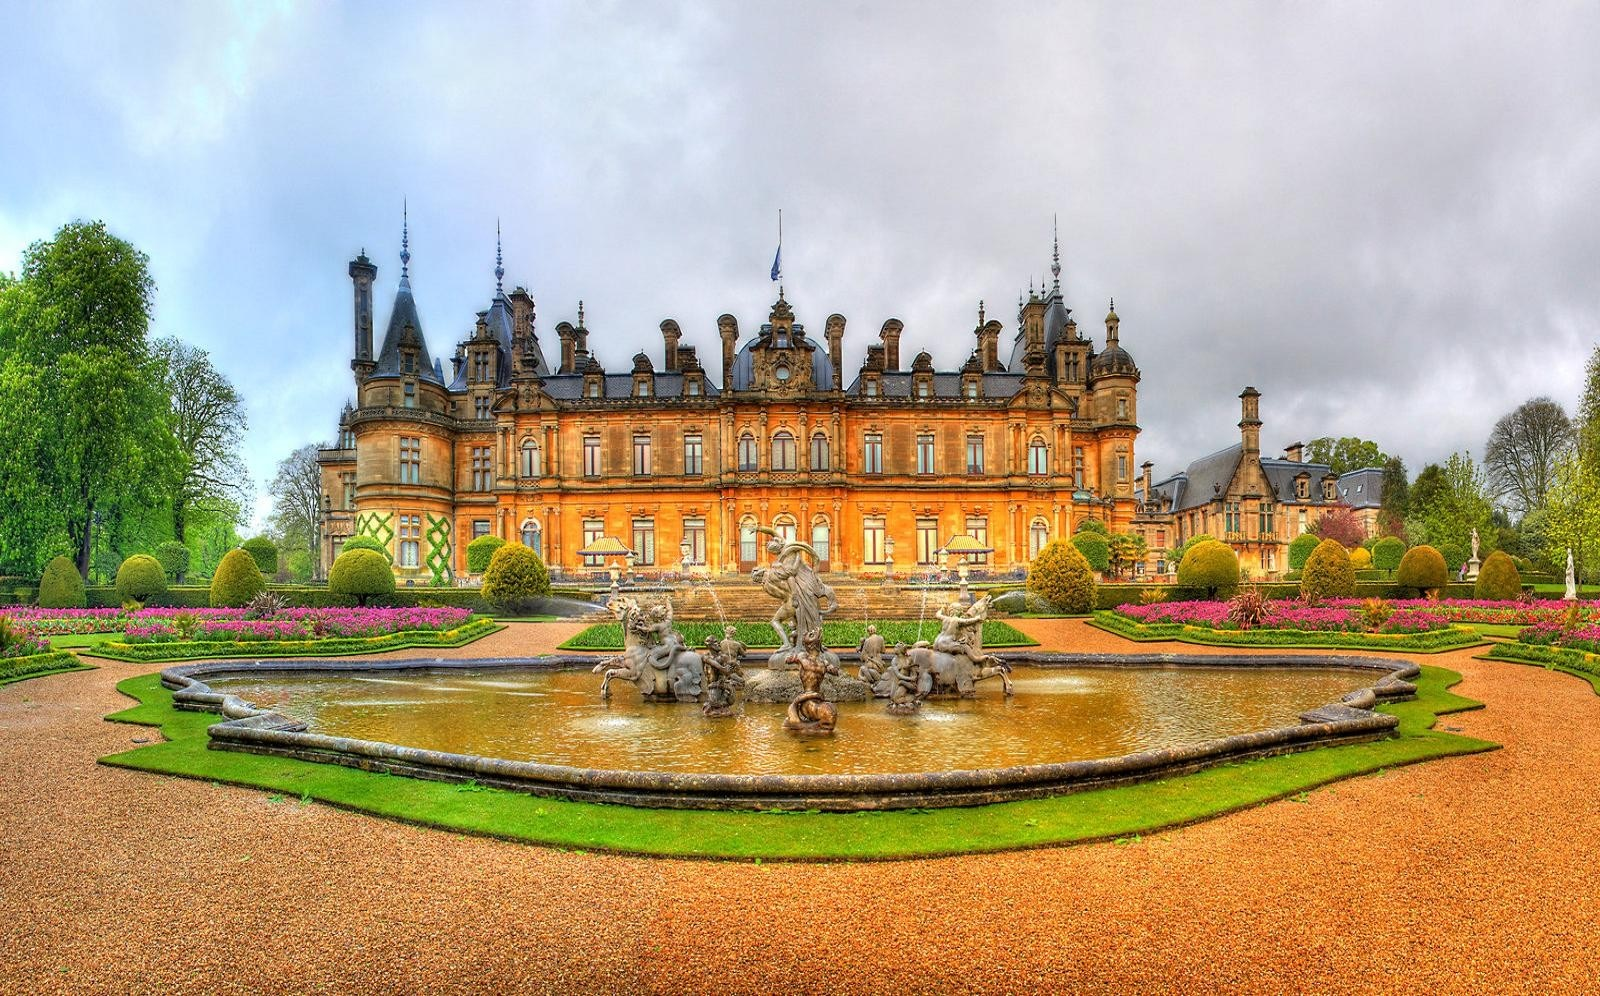 houses-waddesdon-manor-park-big-house-monument-pictures-for-desktop